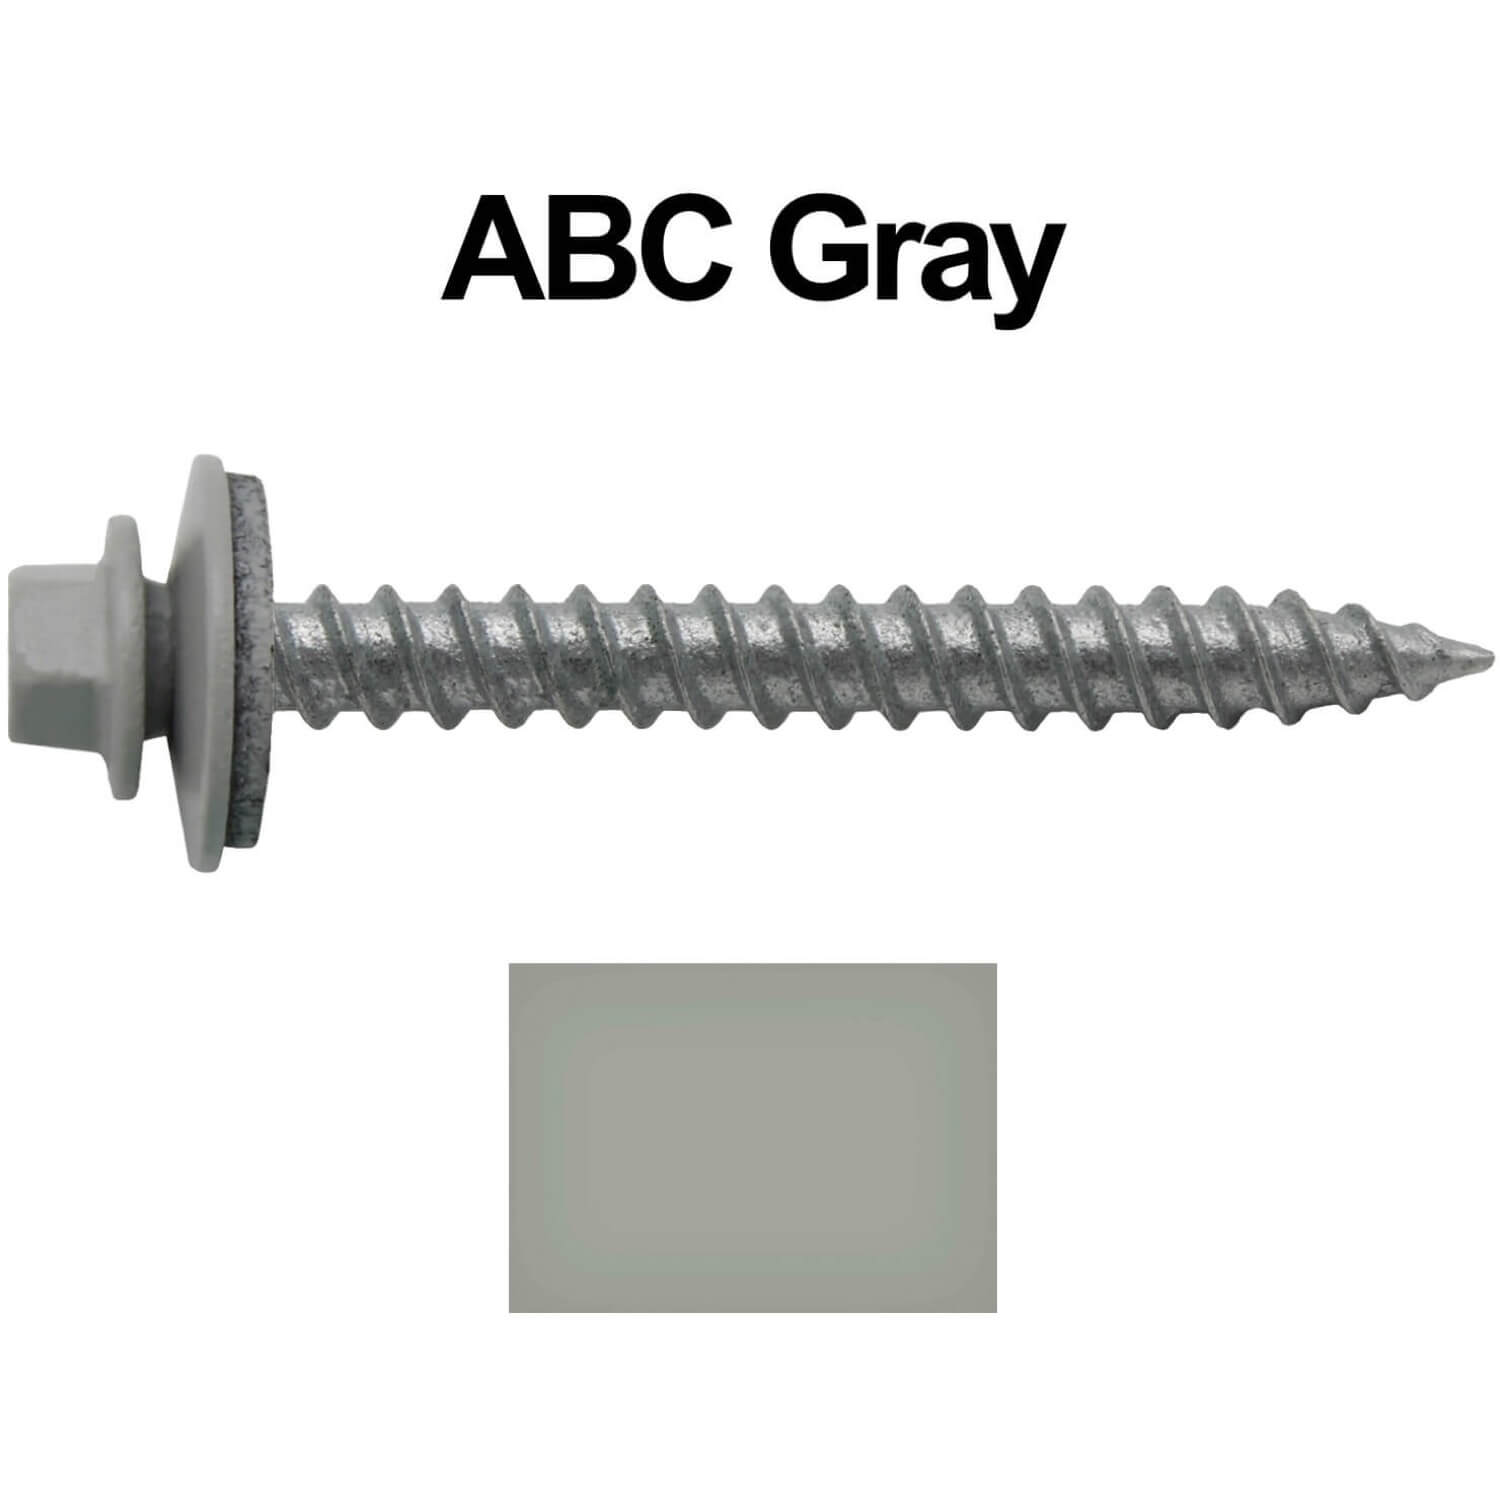 Metal ROOFING SCREWS: (250) 12 x 2